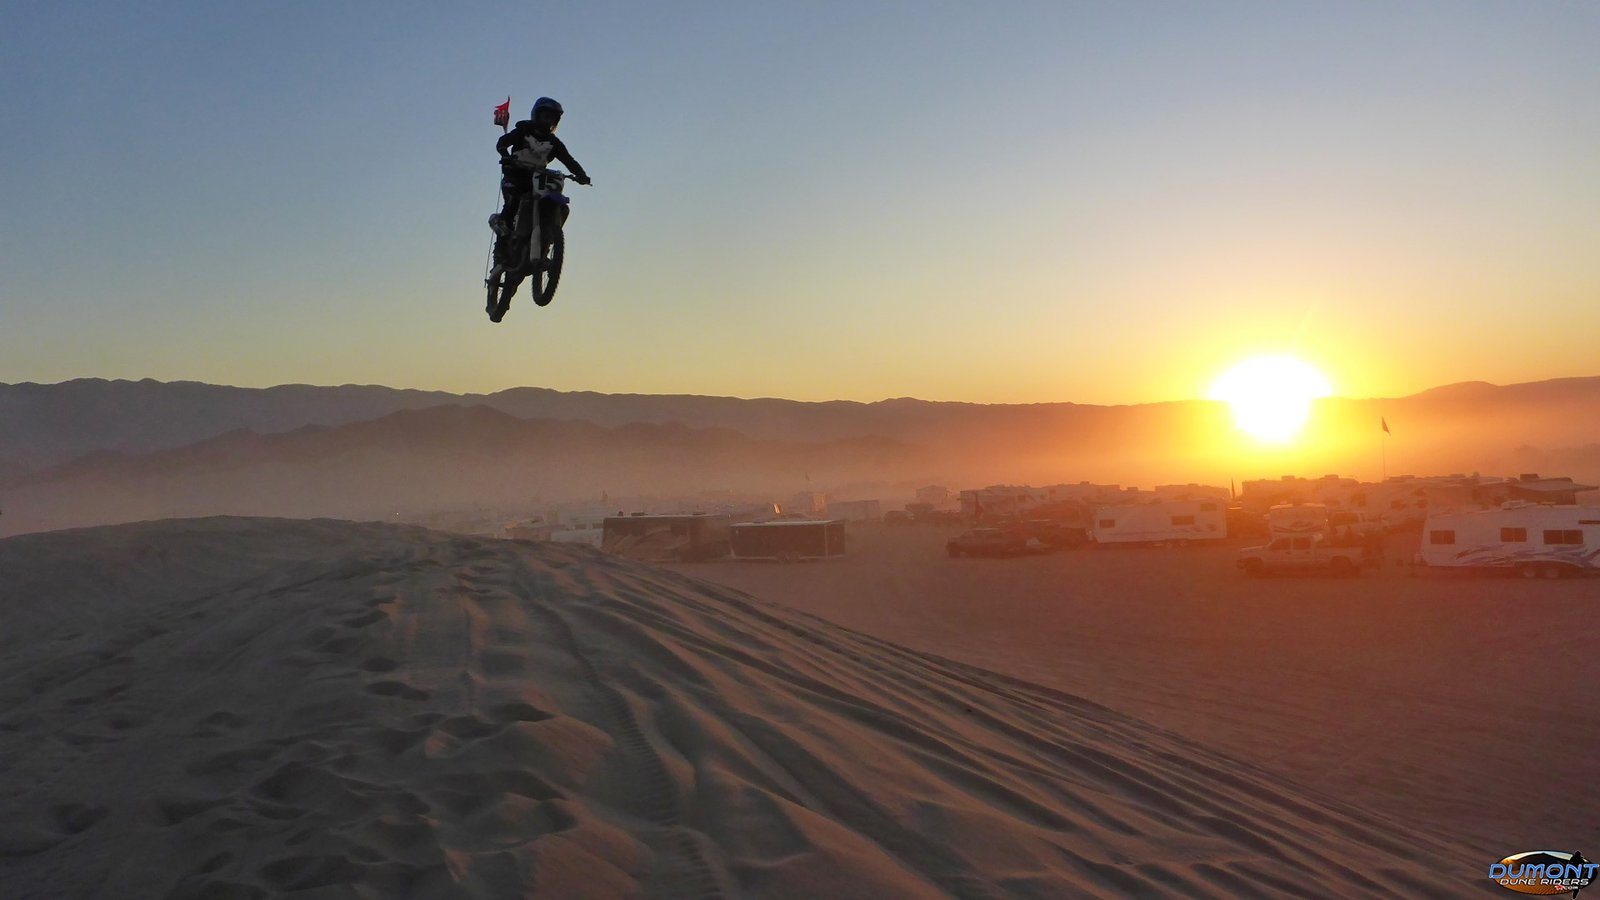 Sending it at sunset, Halloween 2017